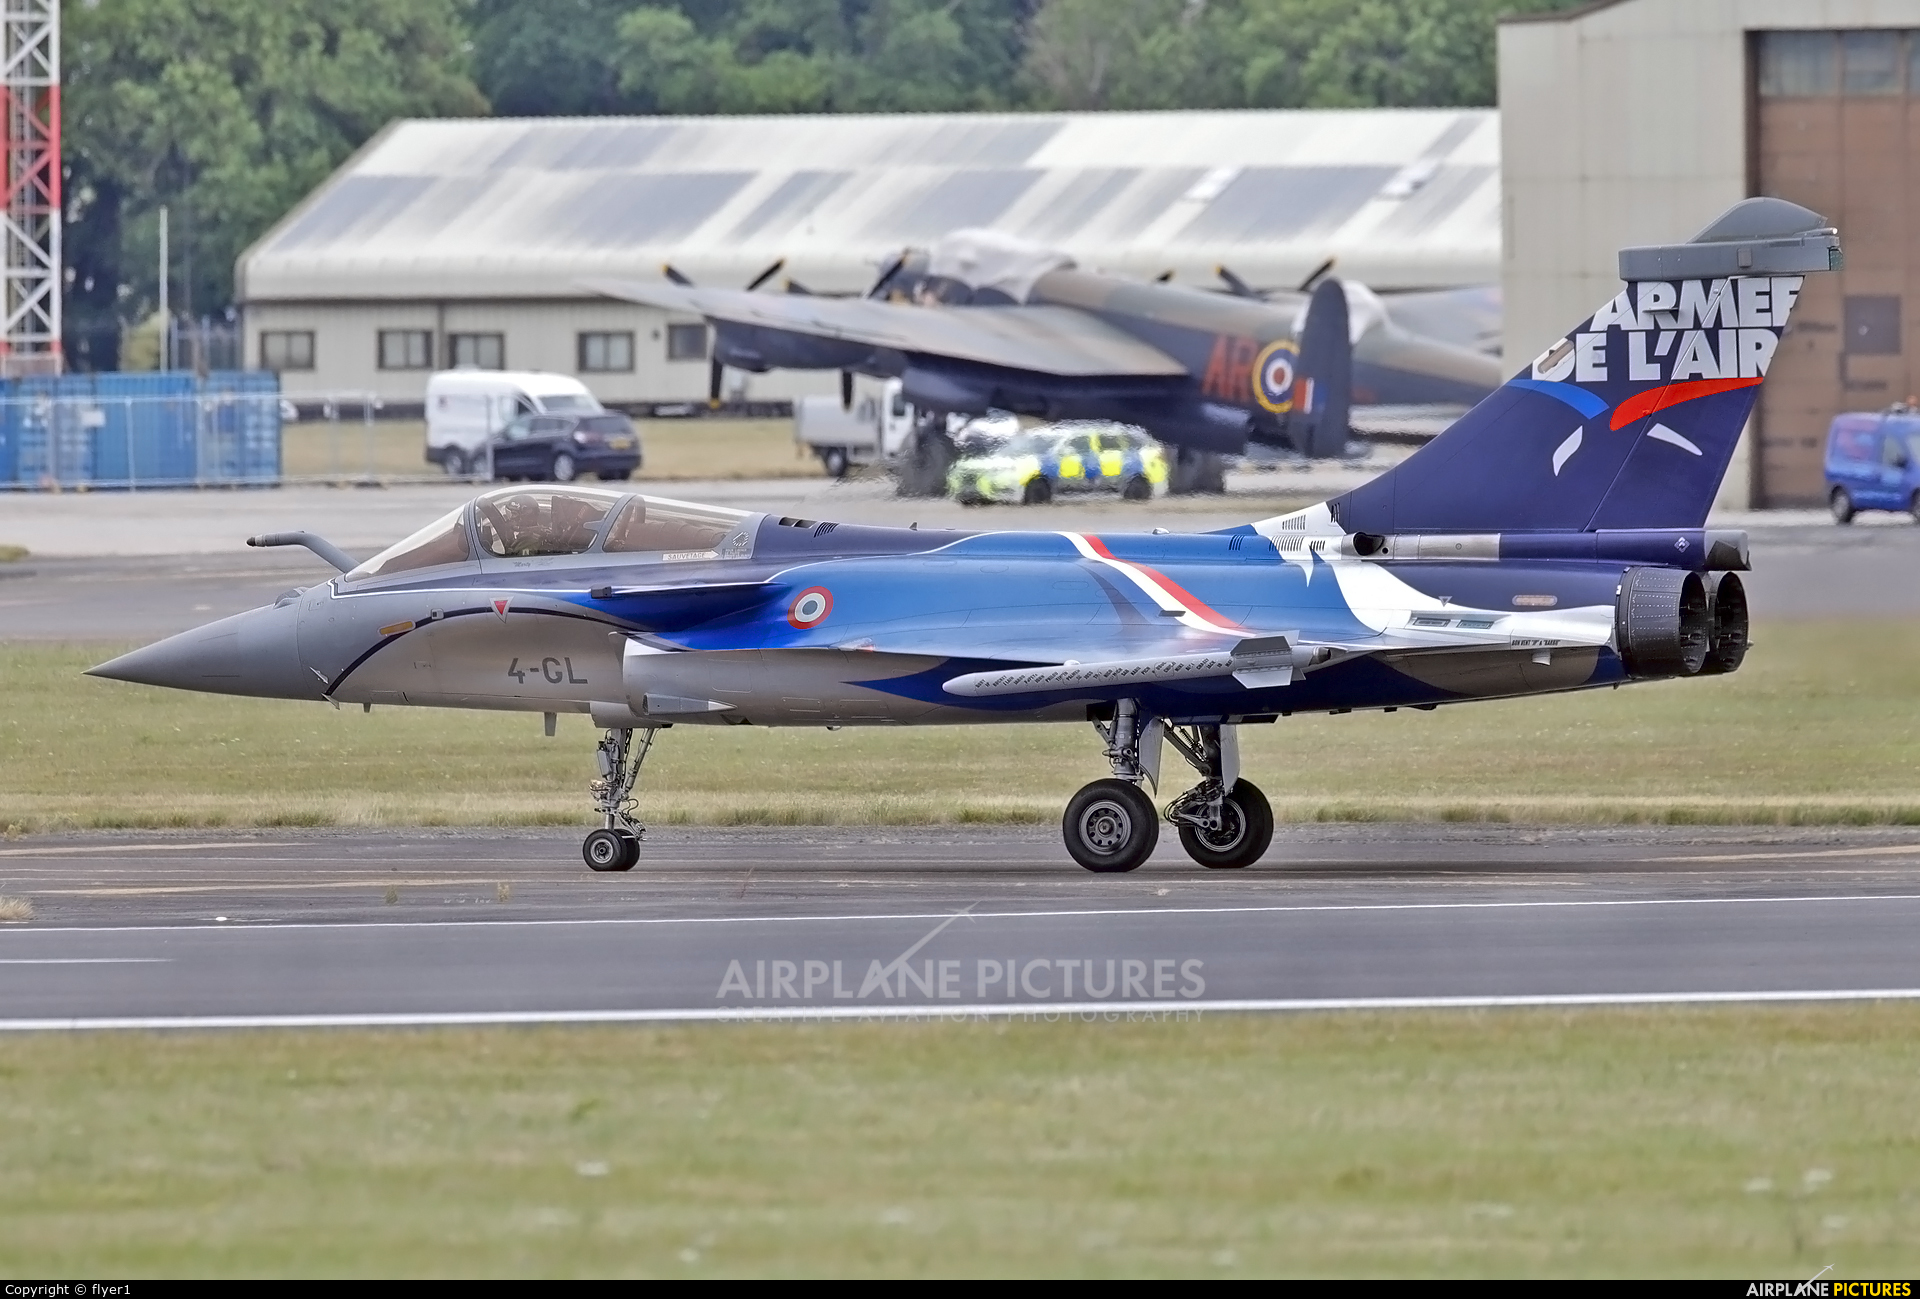 France - Air Force 4-GL aircraft at Fairford